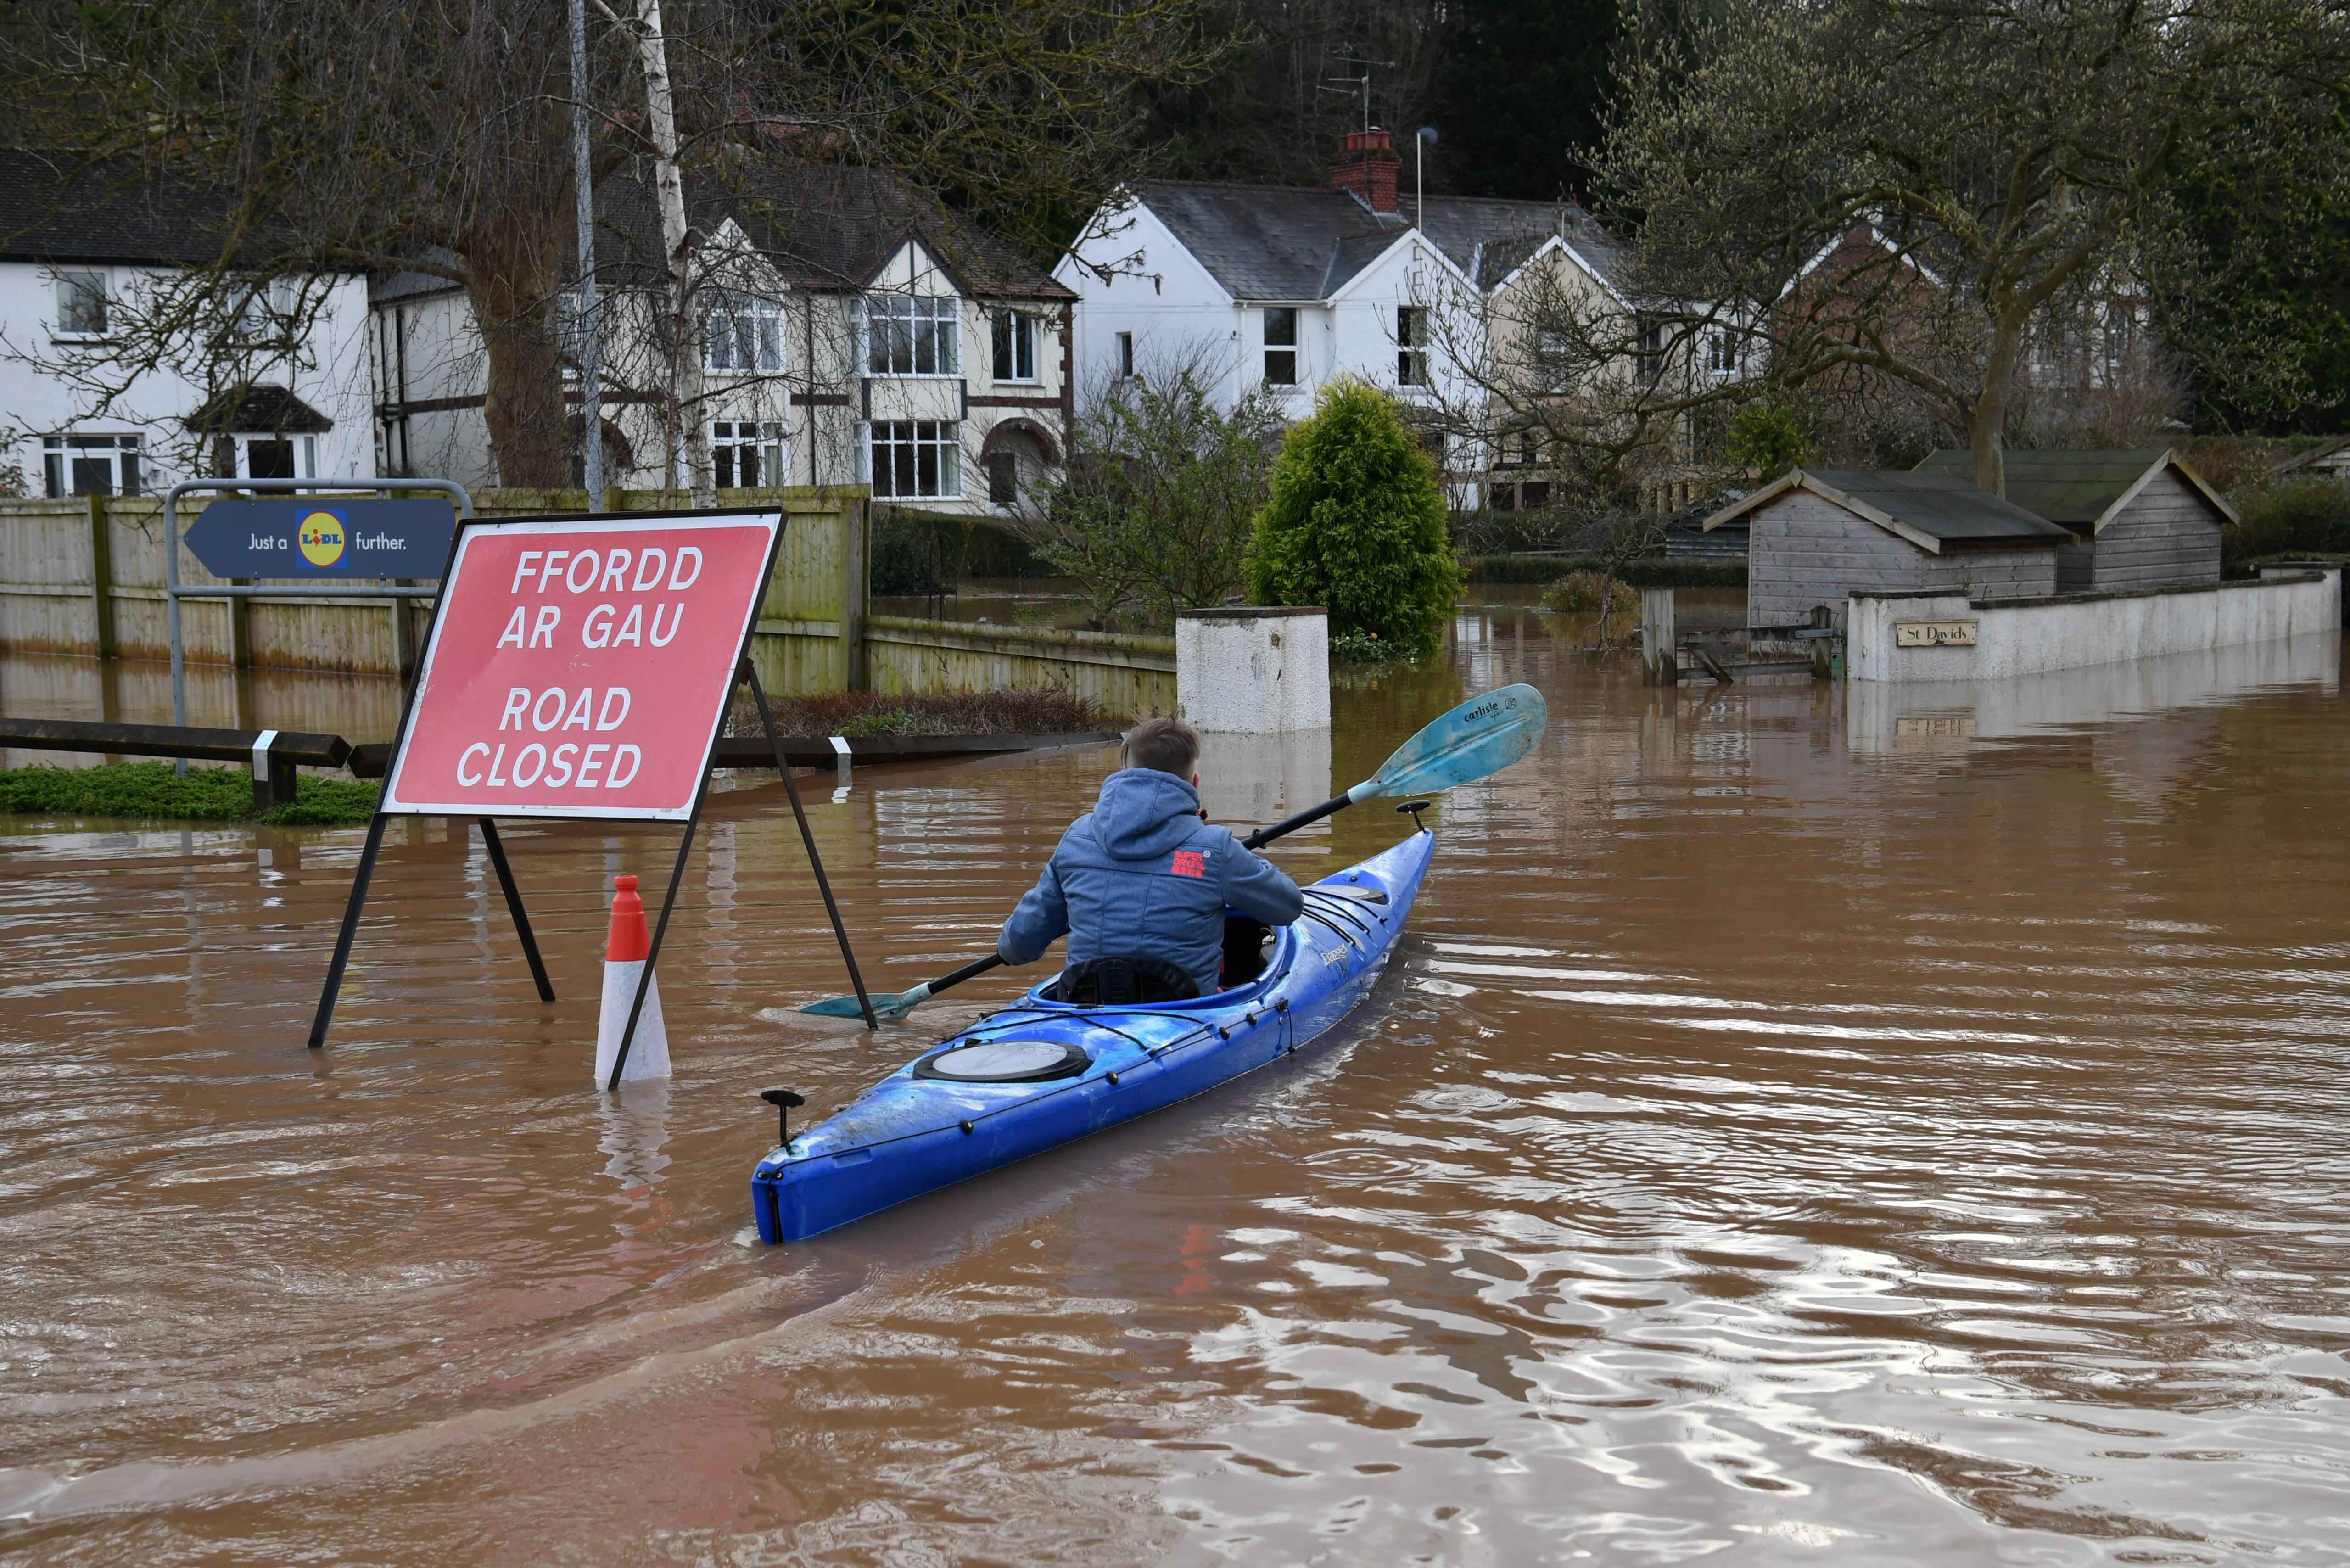 A canoeist makes his way down a road in Monmouth, in the aftermath of Storm Dennis. (Photo by Ben Birchall/PA Images via Getty Images)